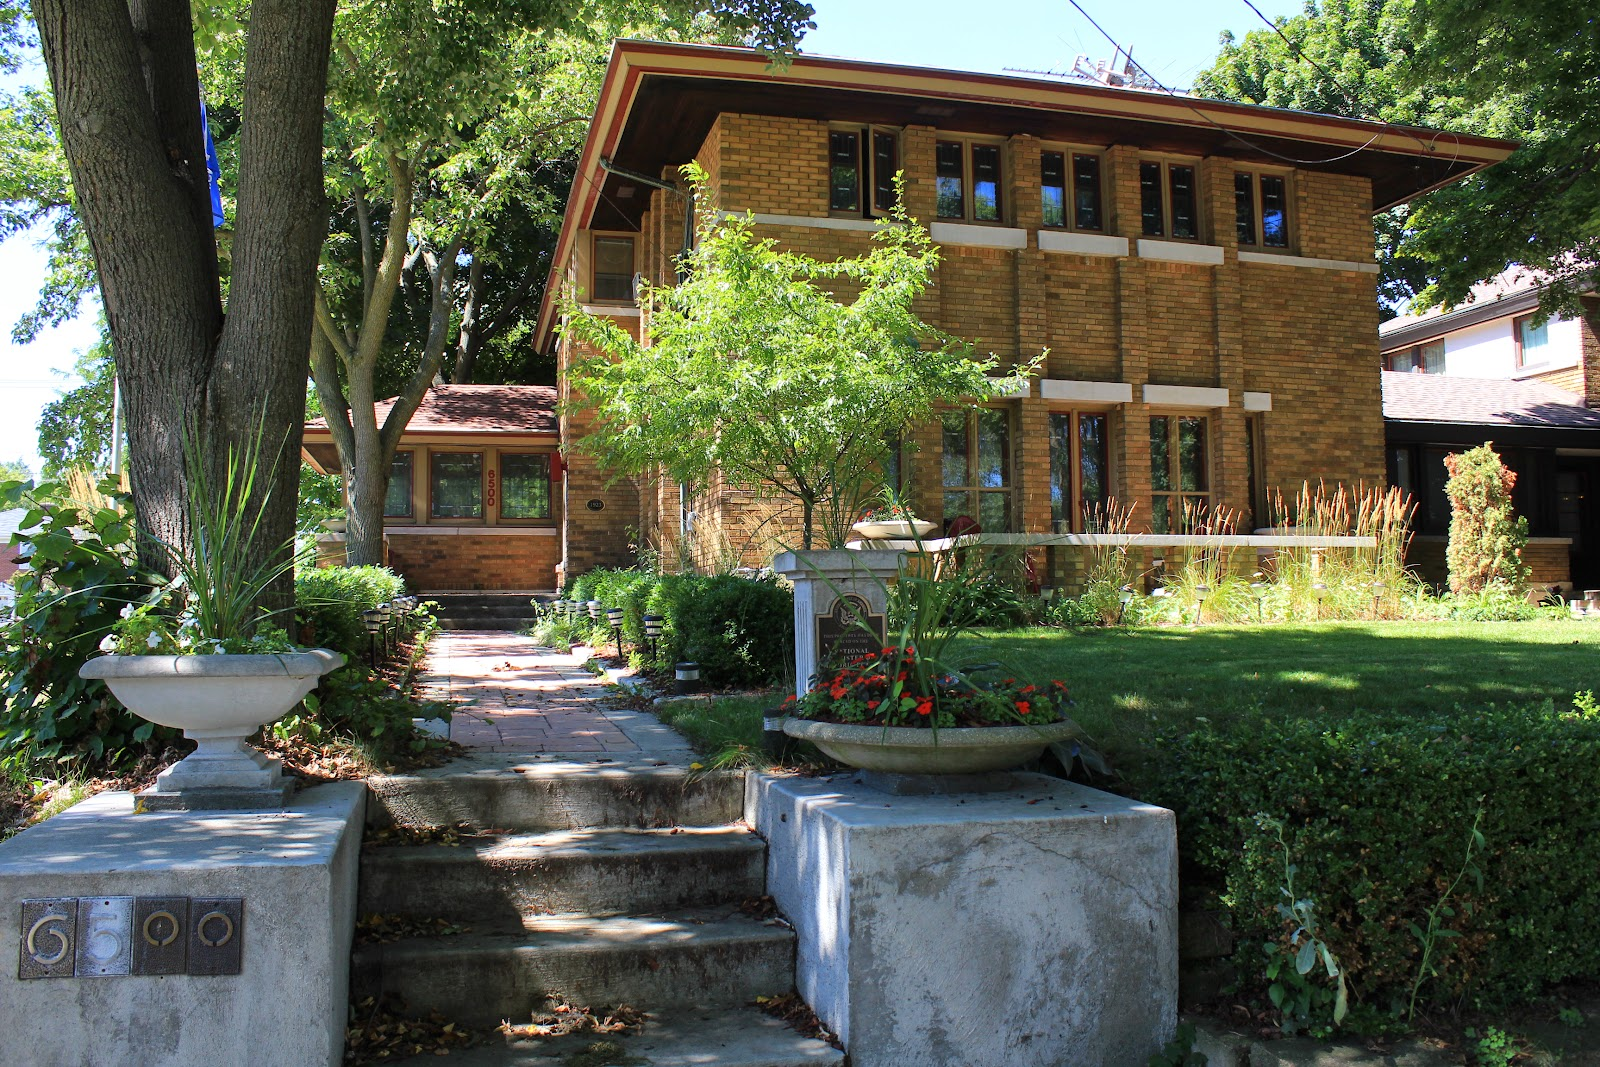 A Madison House Whose Architectural Style Was Influenced By Frank Lloyd Wright